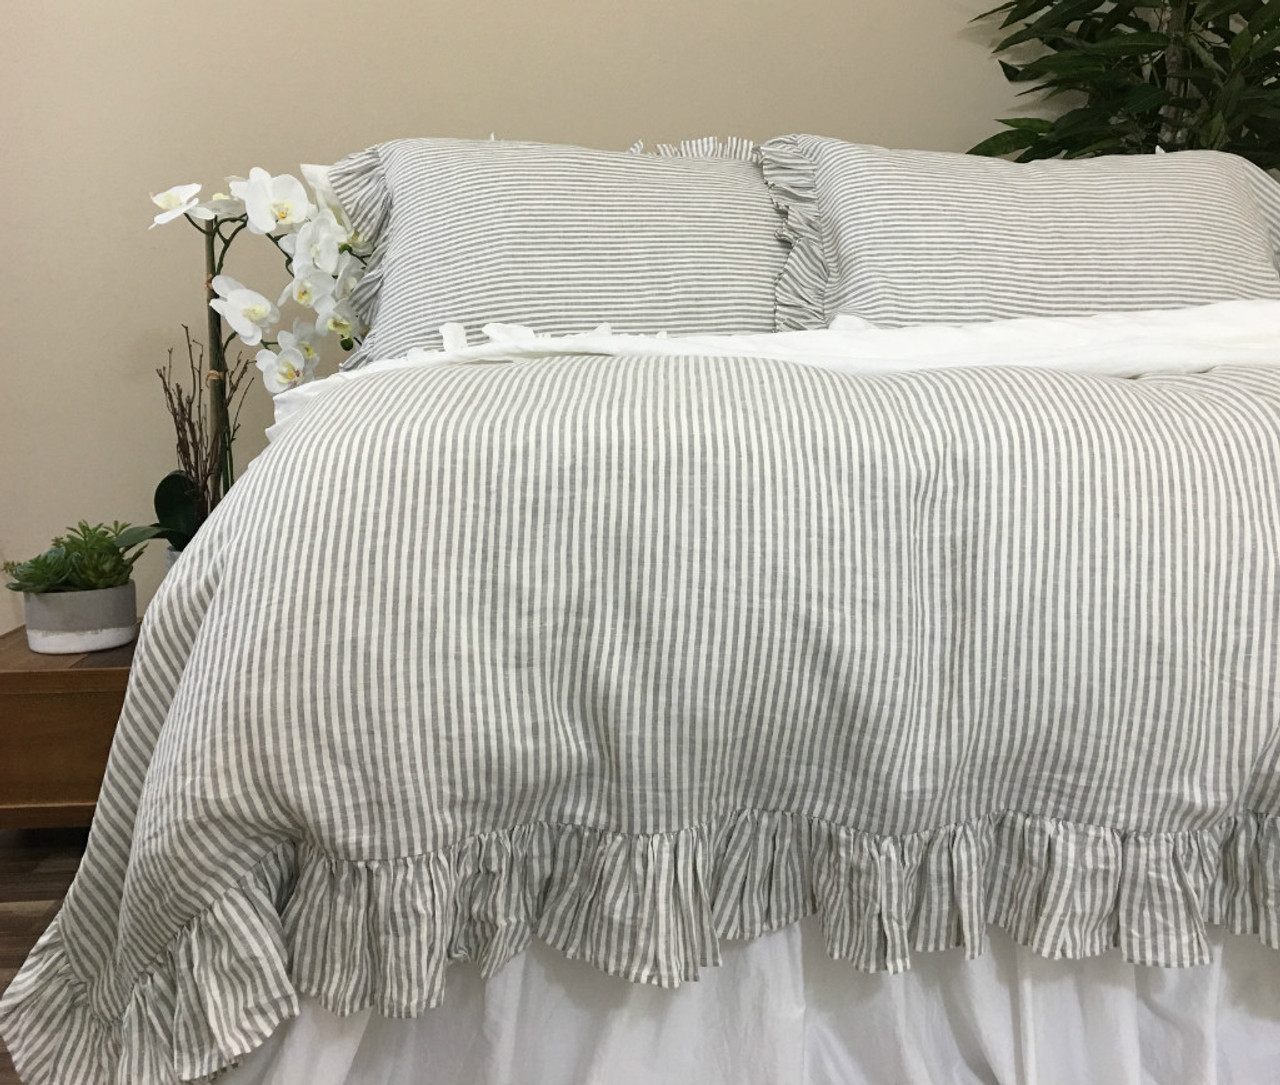 Grey and white pinstripe ruffle duvet cover weaved stripes on both sides elegant classic